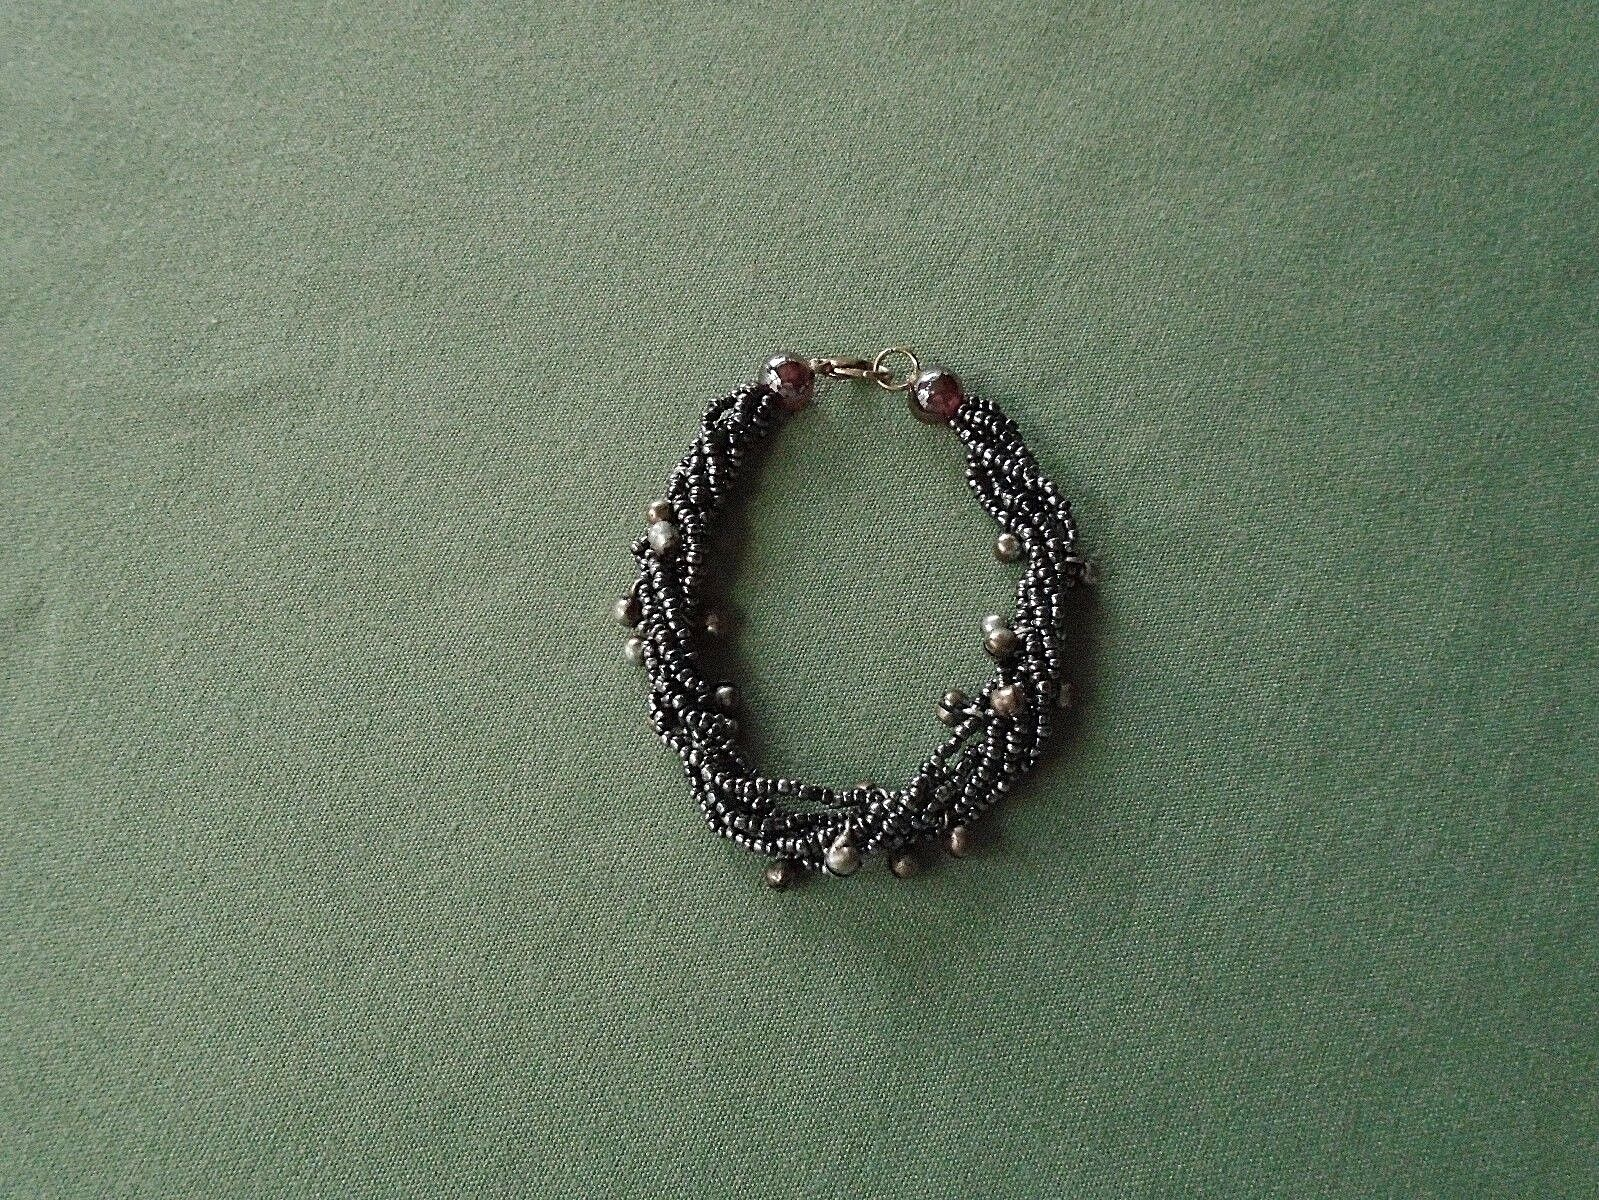 Bracelet 6 strand black hematite and crystal with arrow an heart toggle clasp.